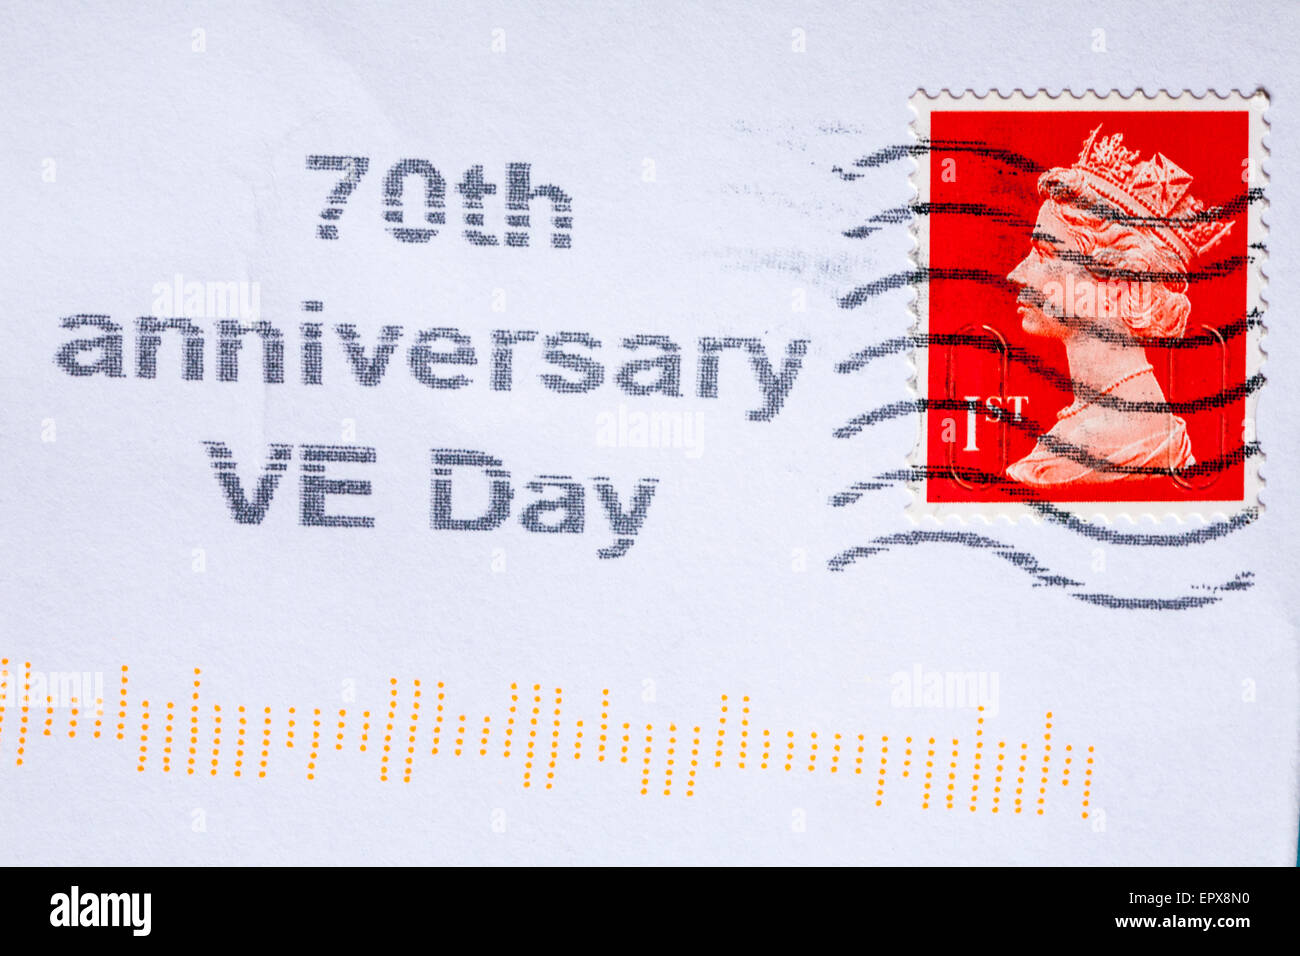 1st class stamp on envelope stamped with 70th anniversary VE Day - Stock Image